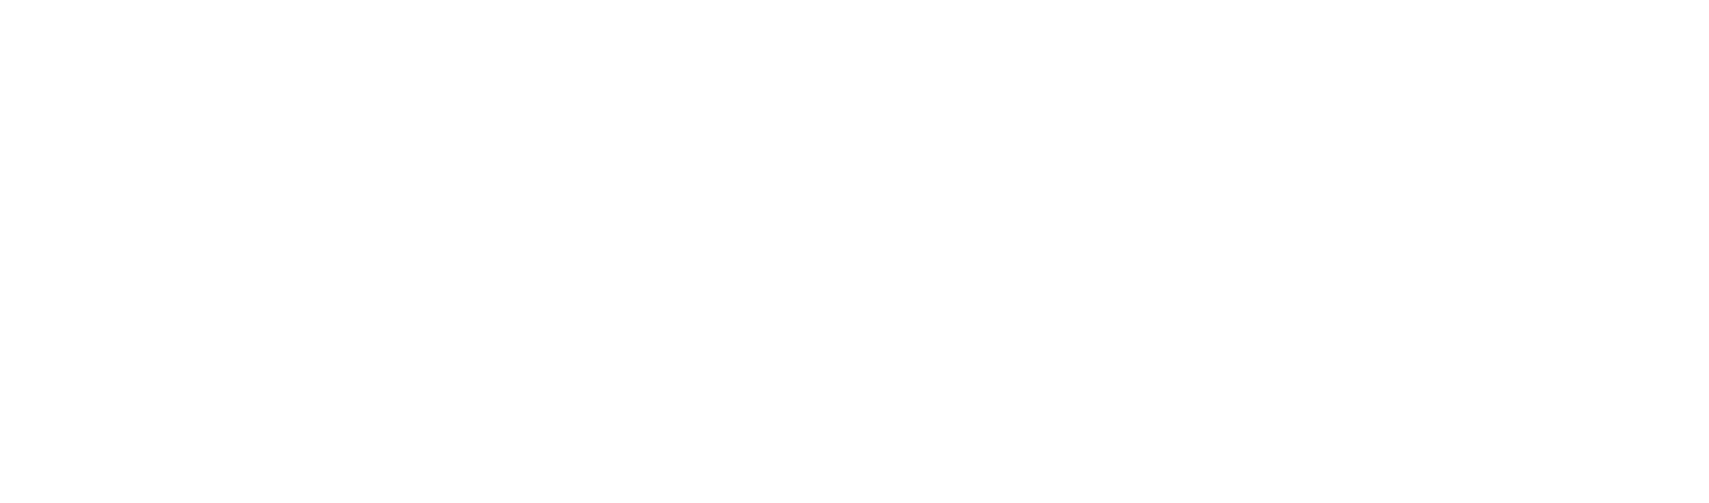 Logo We connect you win